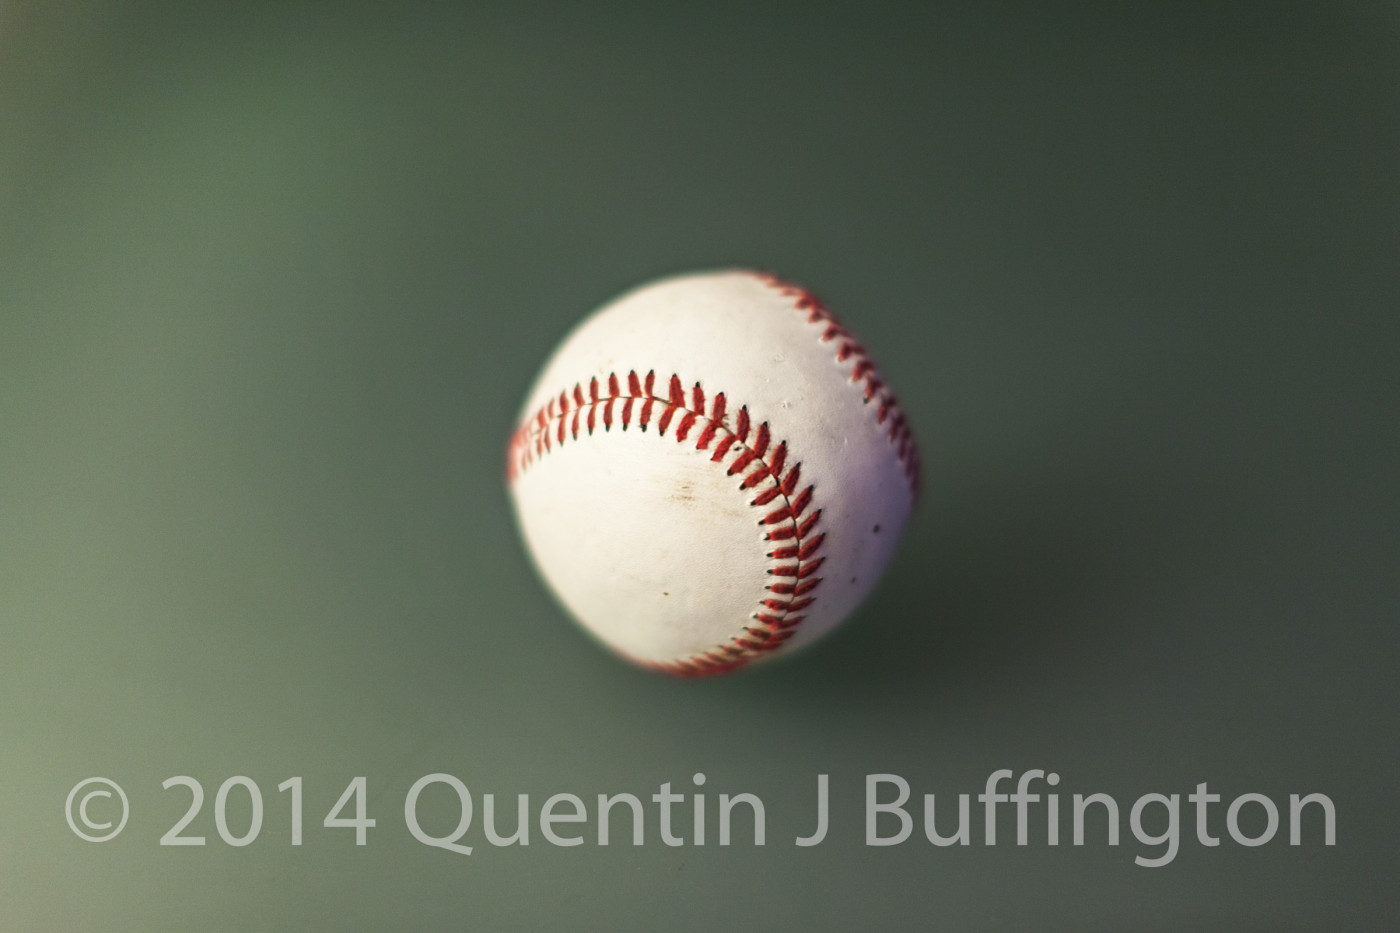 A baseball waiting for opening night!